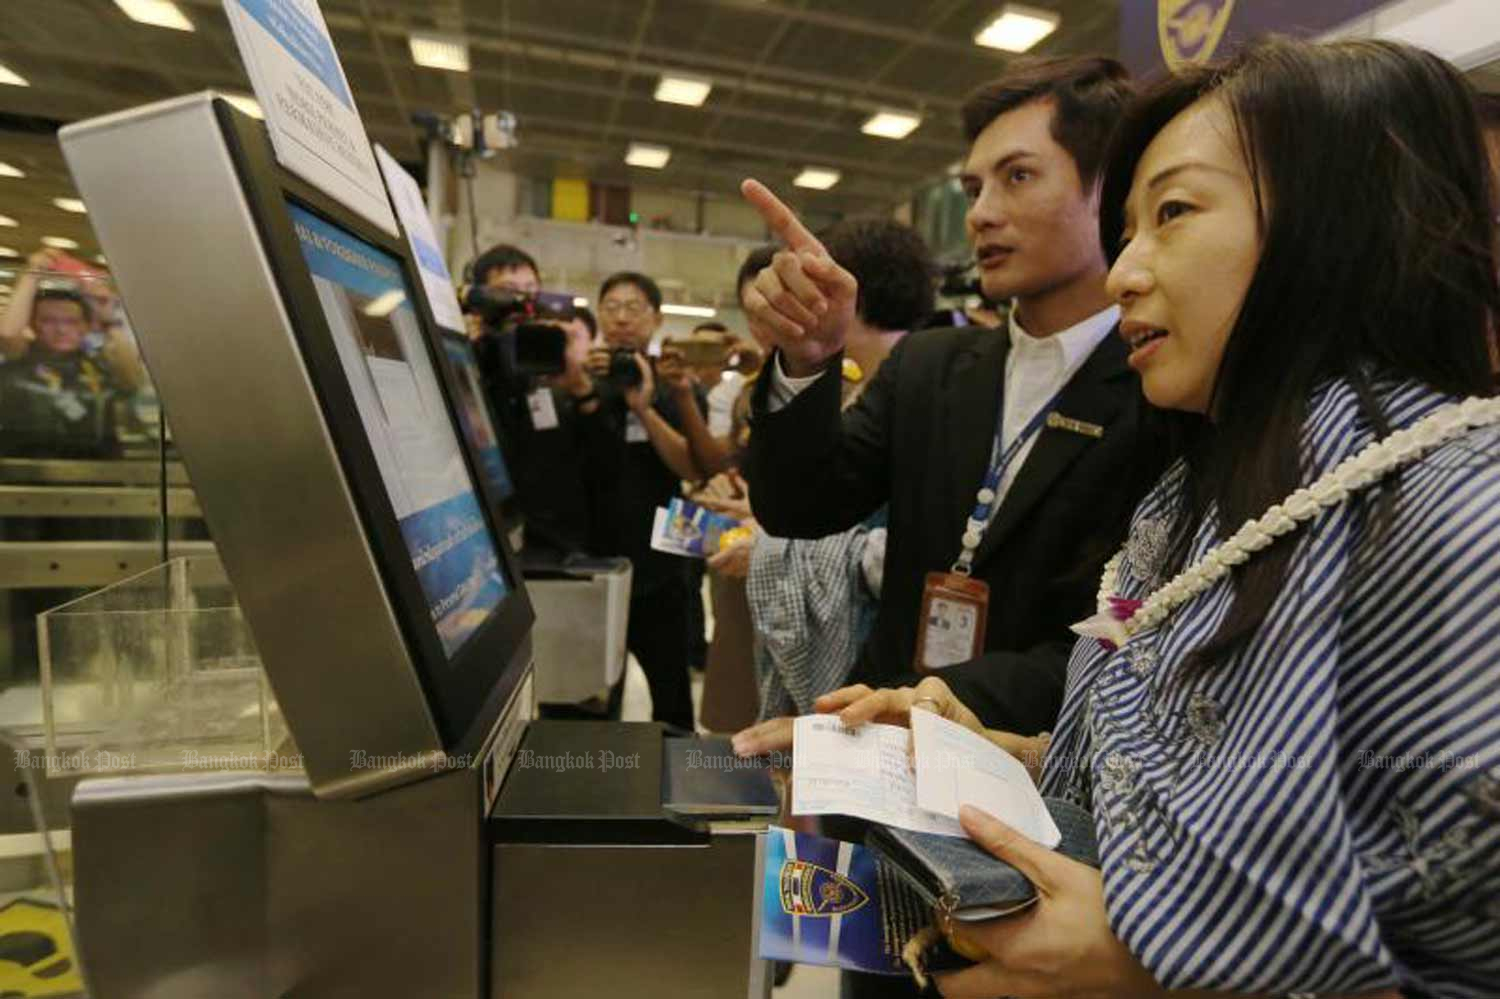 A Chinese tourist uses an e-immigration terminal at Suvarnabhumi airport. Cabinet has extended the visa-fee waiver for citizens of 18 countries until April, as part of an economic stimulus package. (File photo)